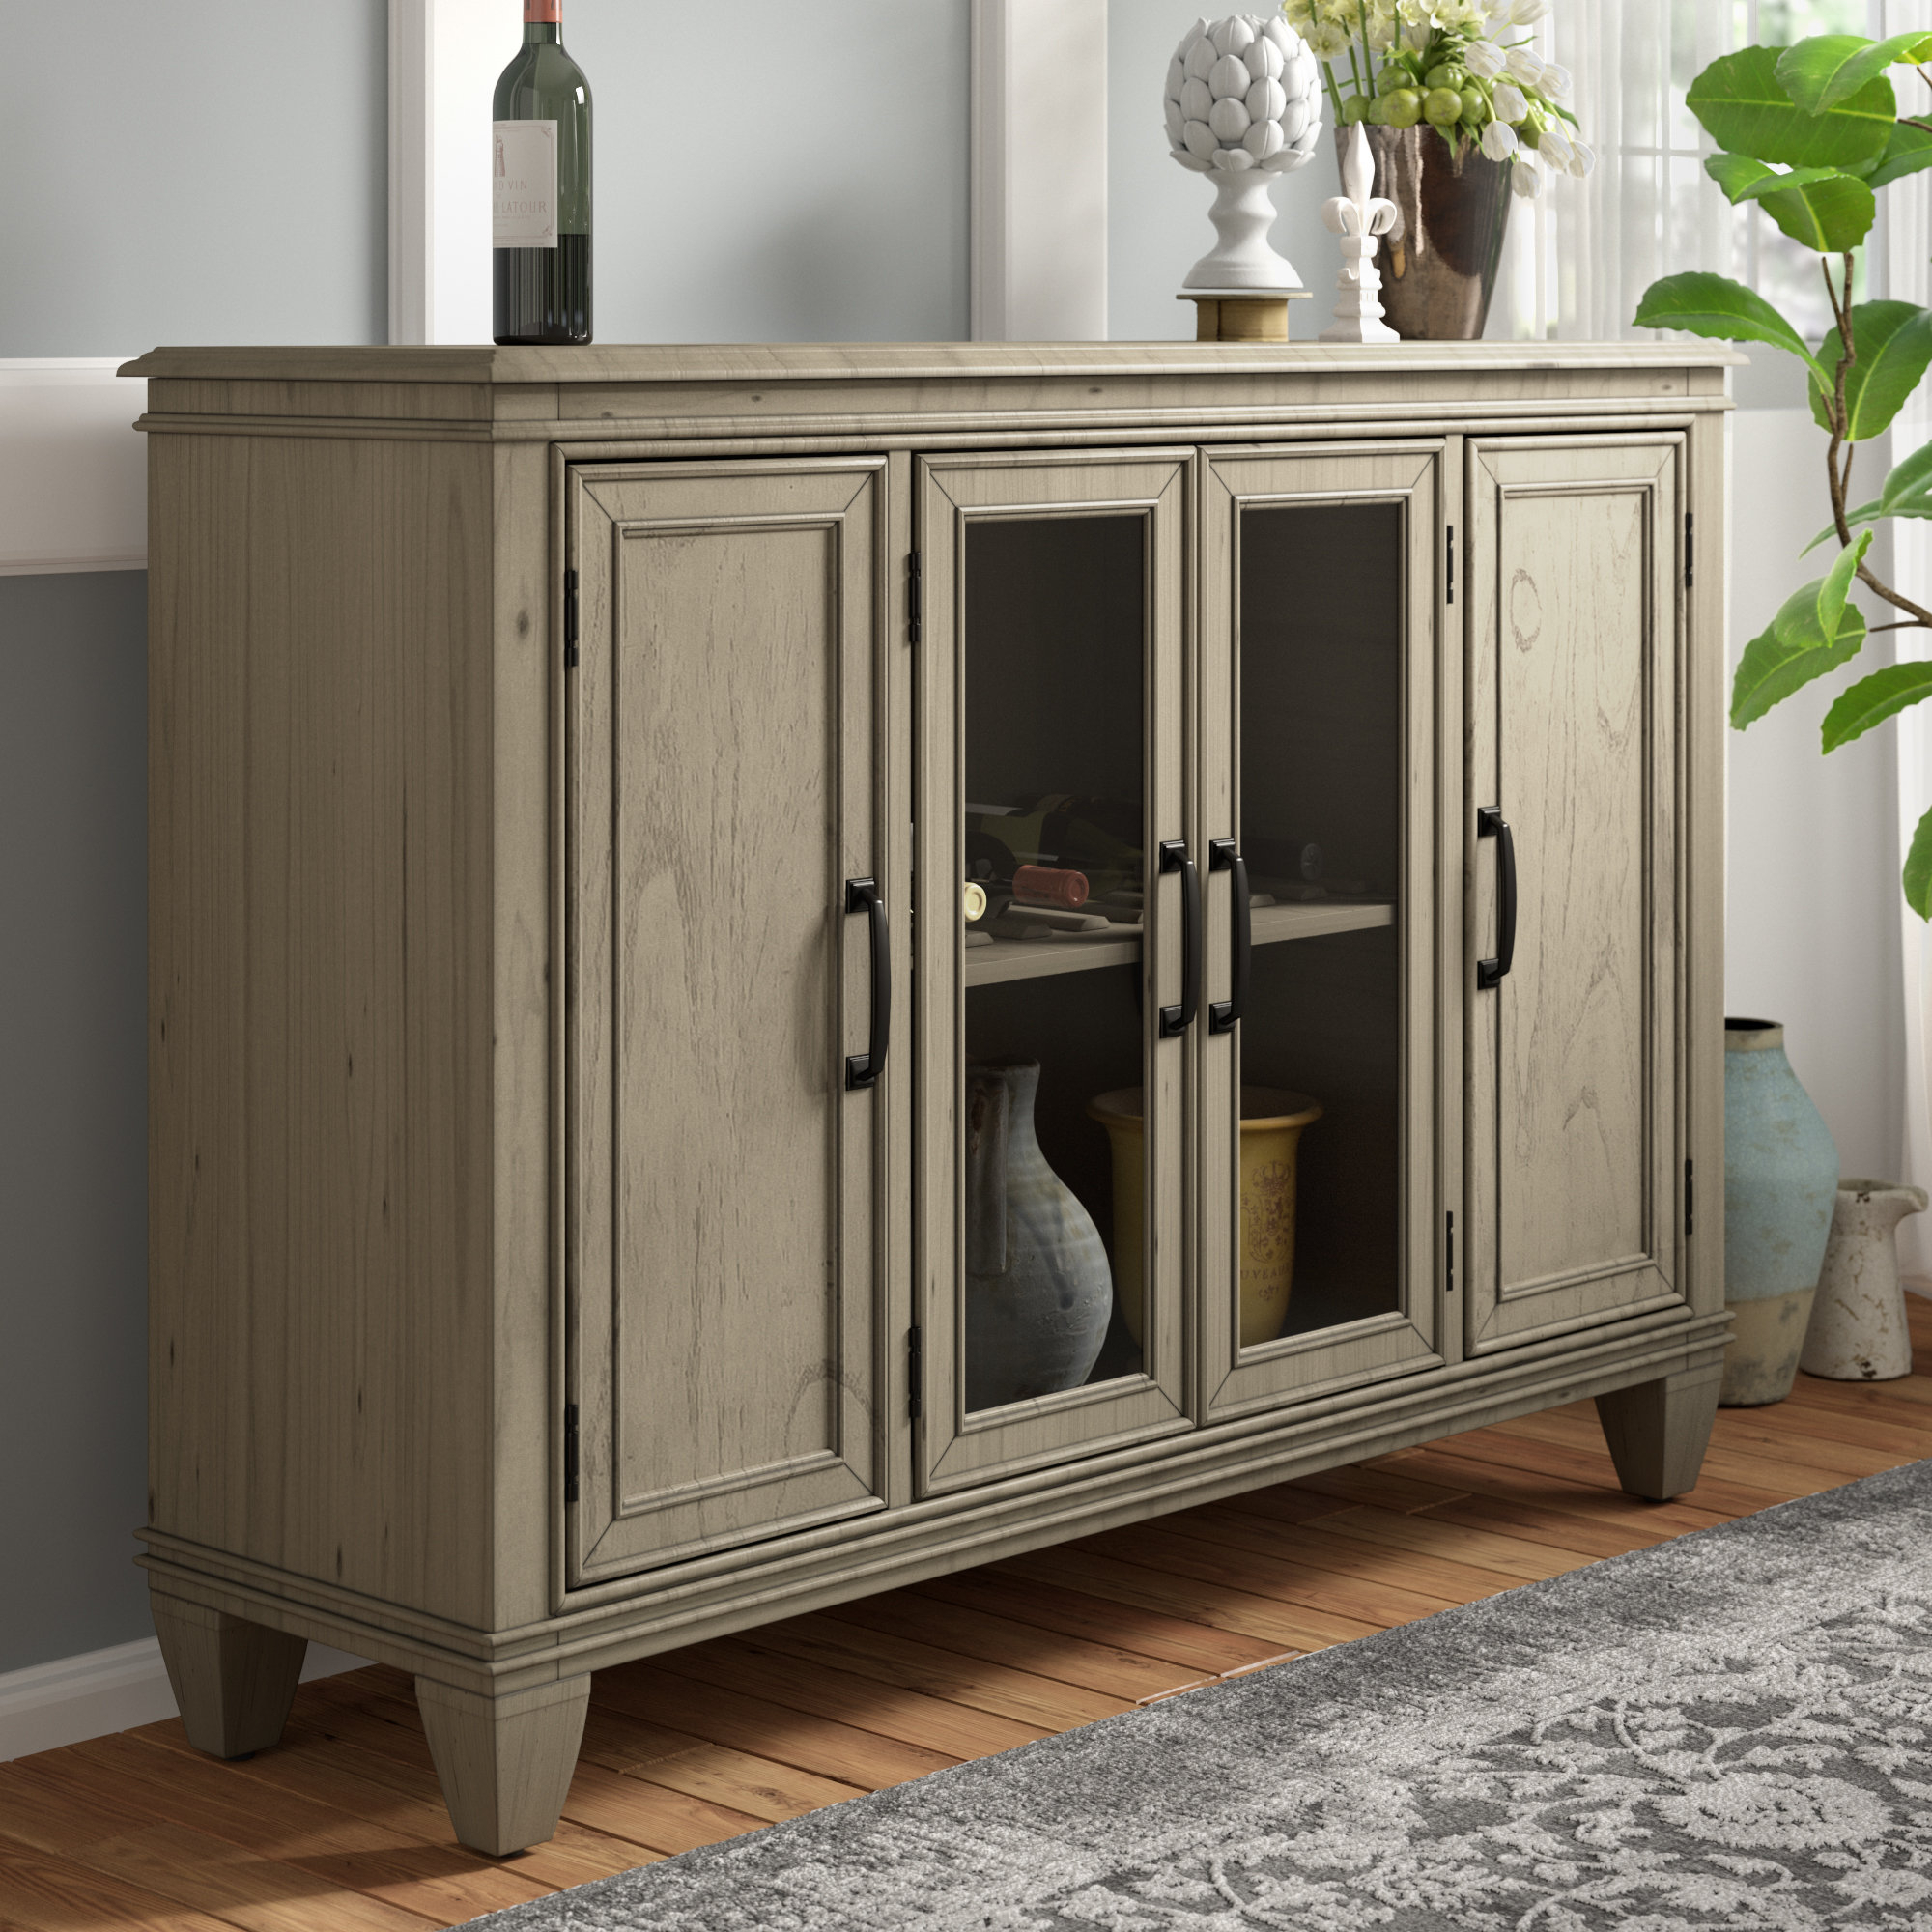 Brumiss Sideboard Pertaining To Most Recently Released Whitten Sideboards (#1 of 20)